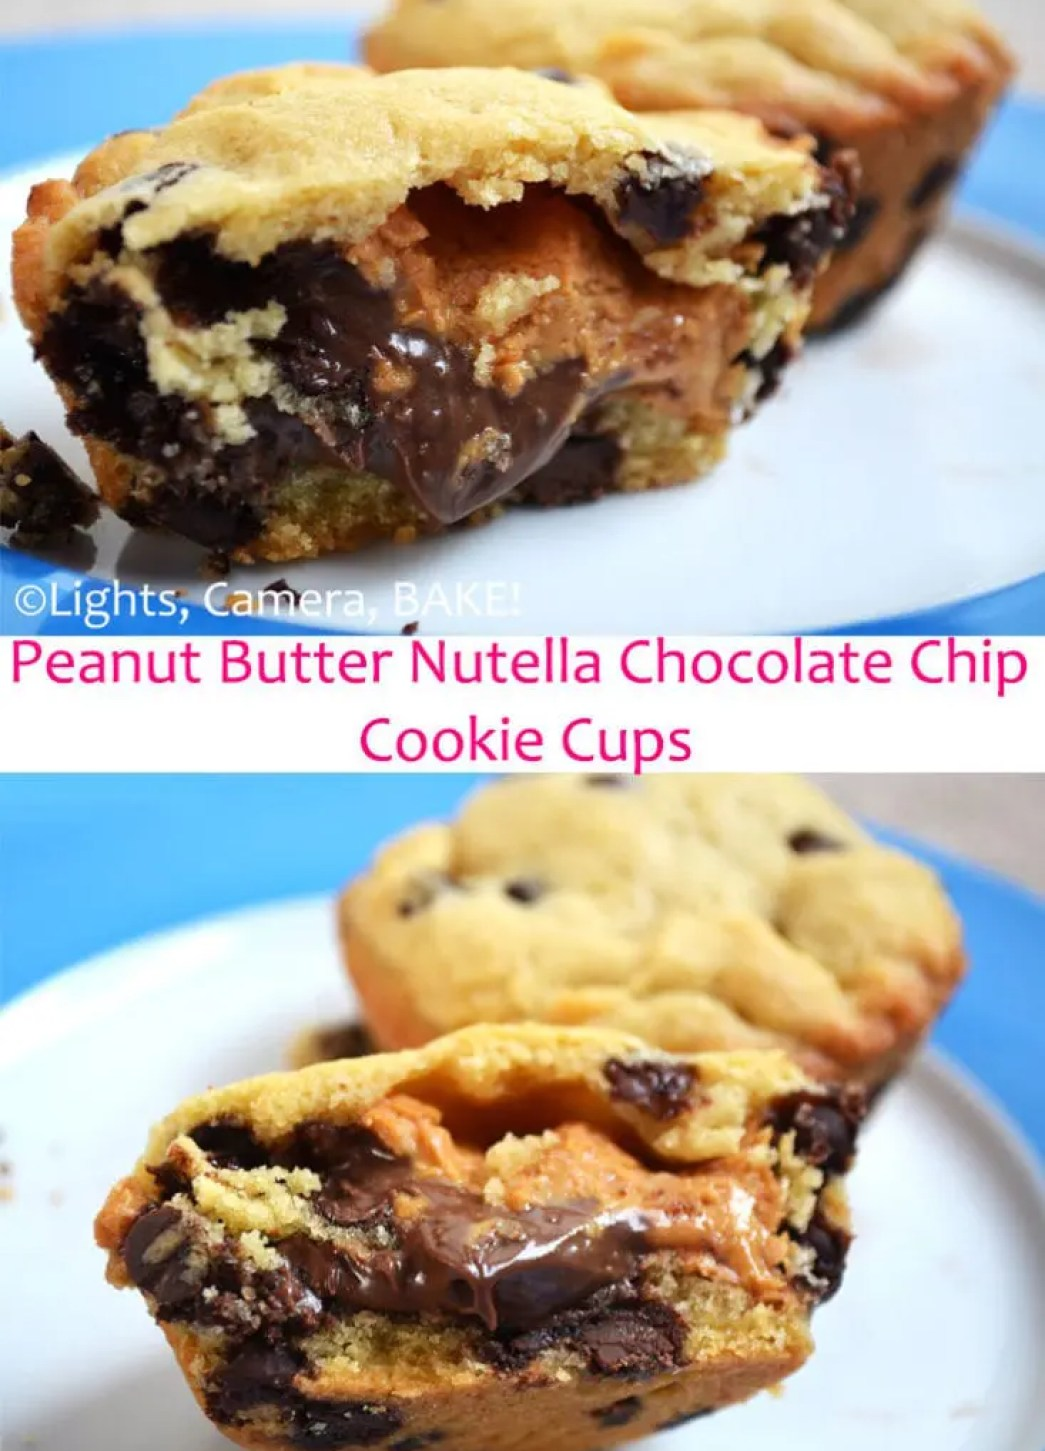 Peanut Butter Nutella Filled Cookie Cups. Goory peanut butter and Nutella encased in a soft and chewy chocolate chip cookie cup. So delicious and over the top goodness! #Recipe #chocolatechipcookies #nutellacookies